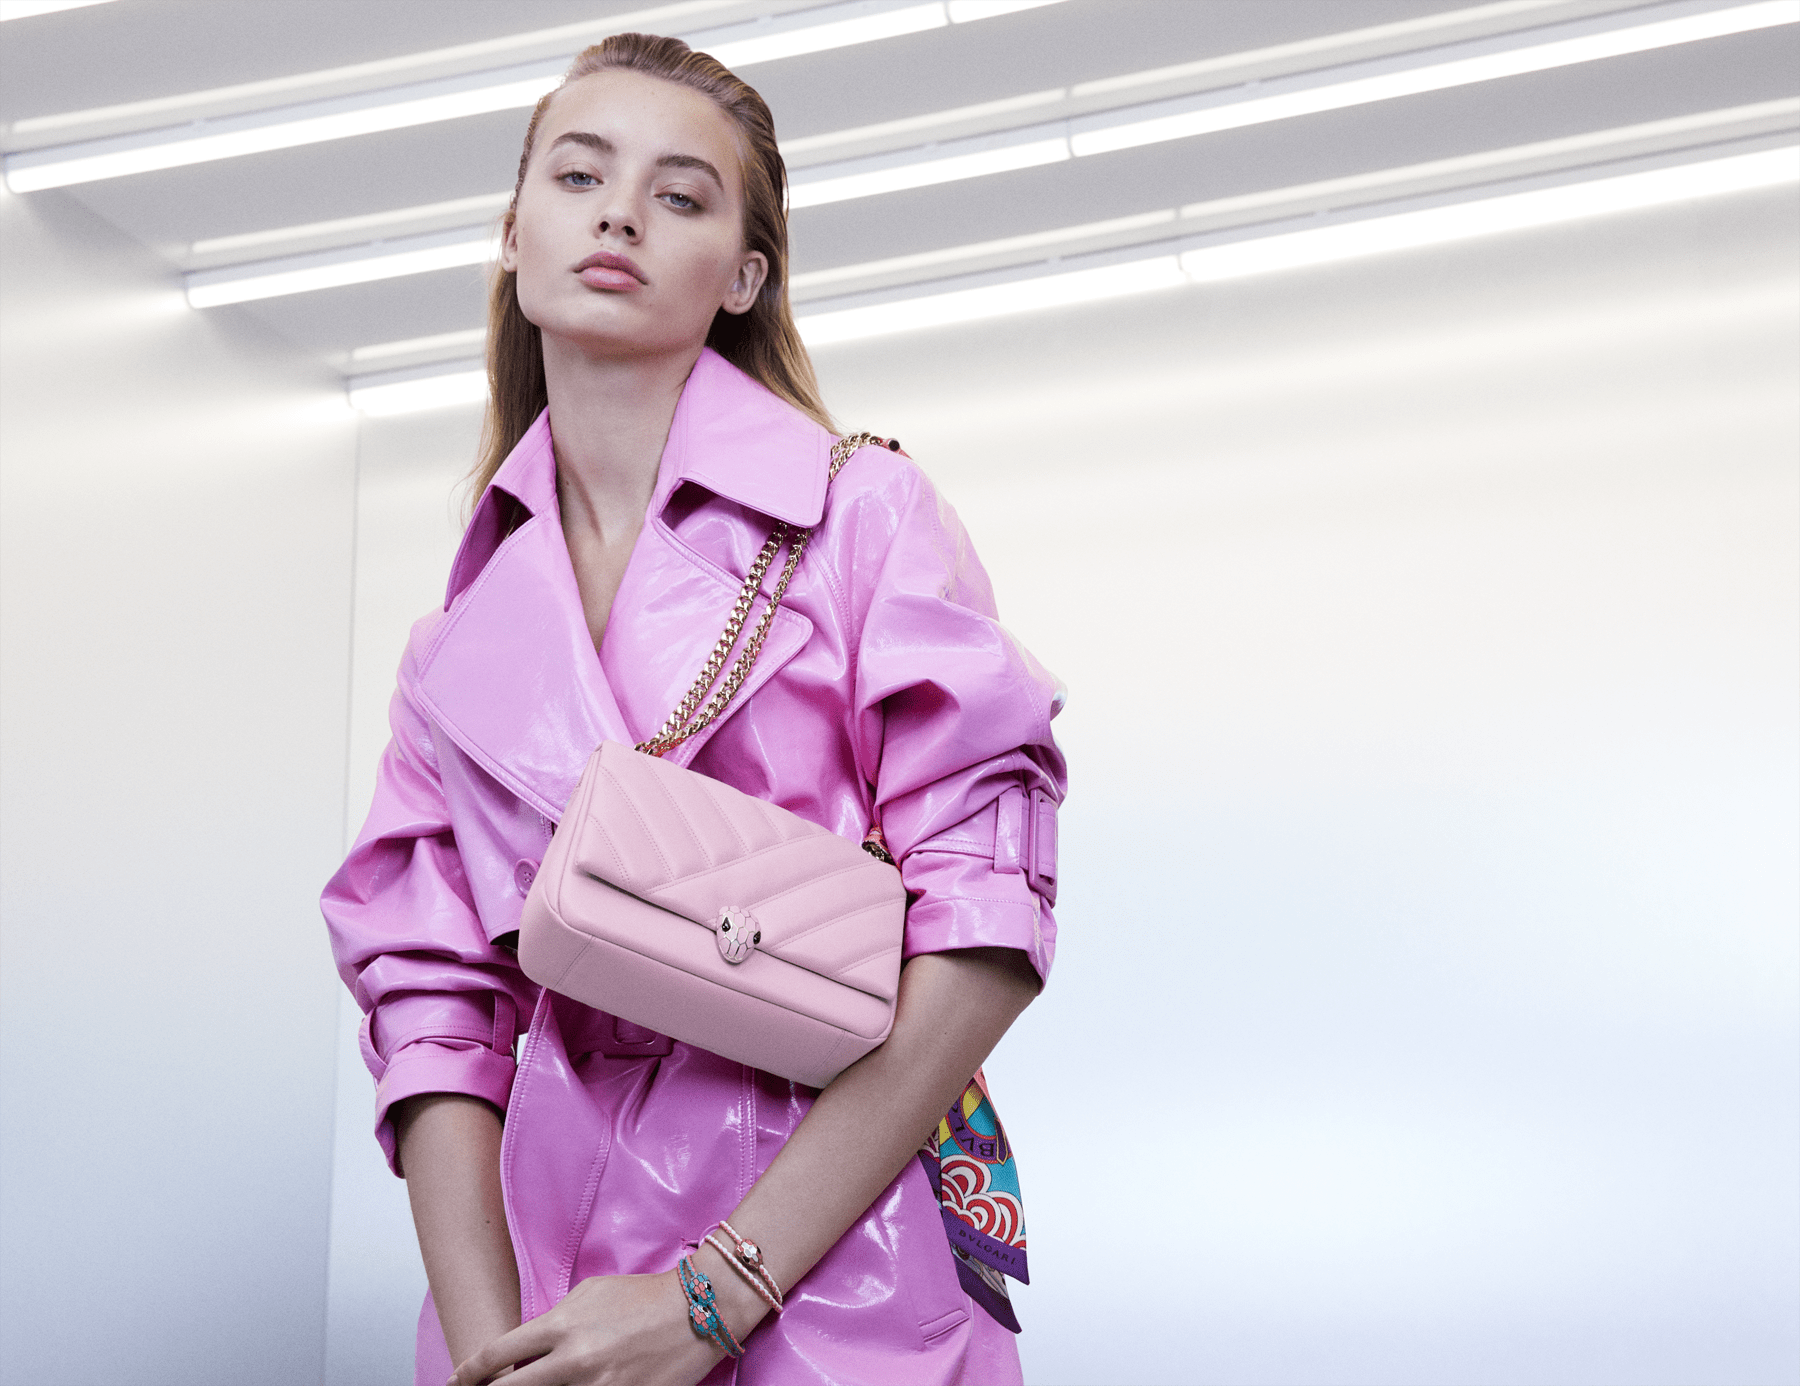 Serpenti Cabochon shoulder bag in soft matelassé rosa di francia nappa leather, with a graphic motif and rosa di francia calf leather. Brass light gold plated seductive snakehead closure in matt rosa di francia, shiny rosa di francia enamel and black onyx eyes. 288720 image 5